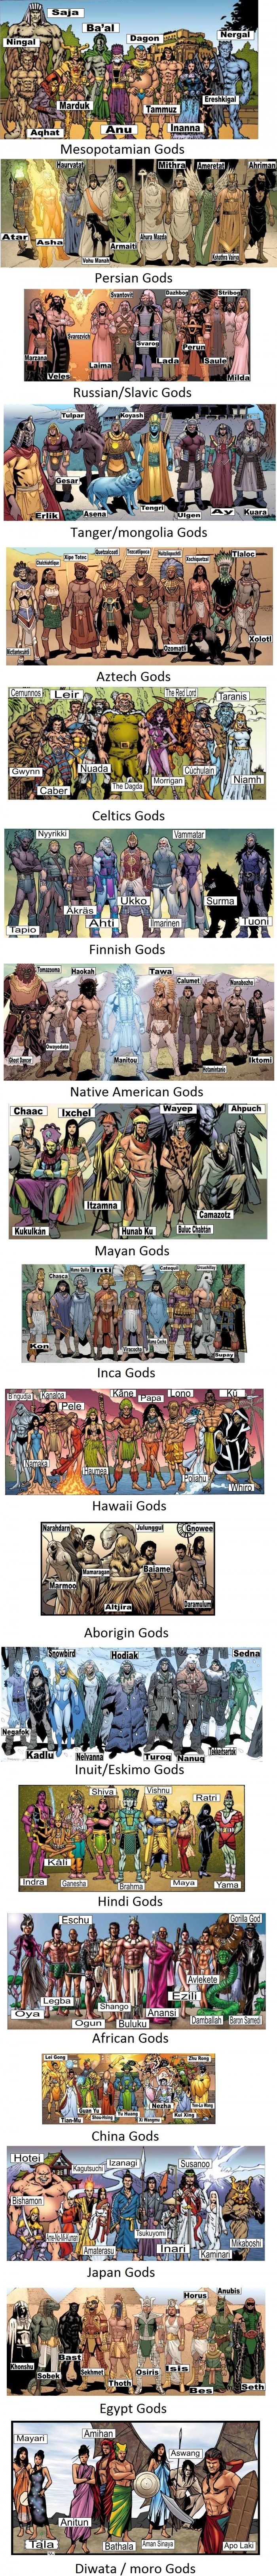 Gods like comic book characters